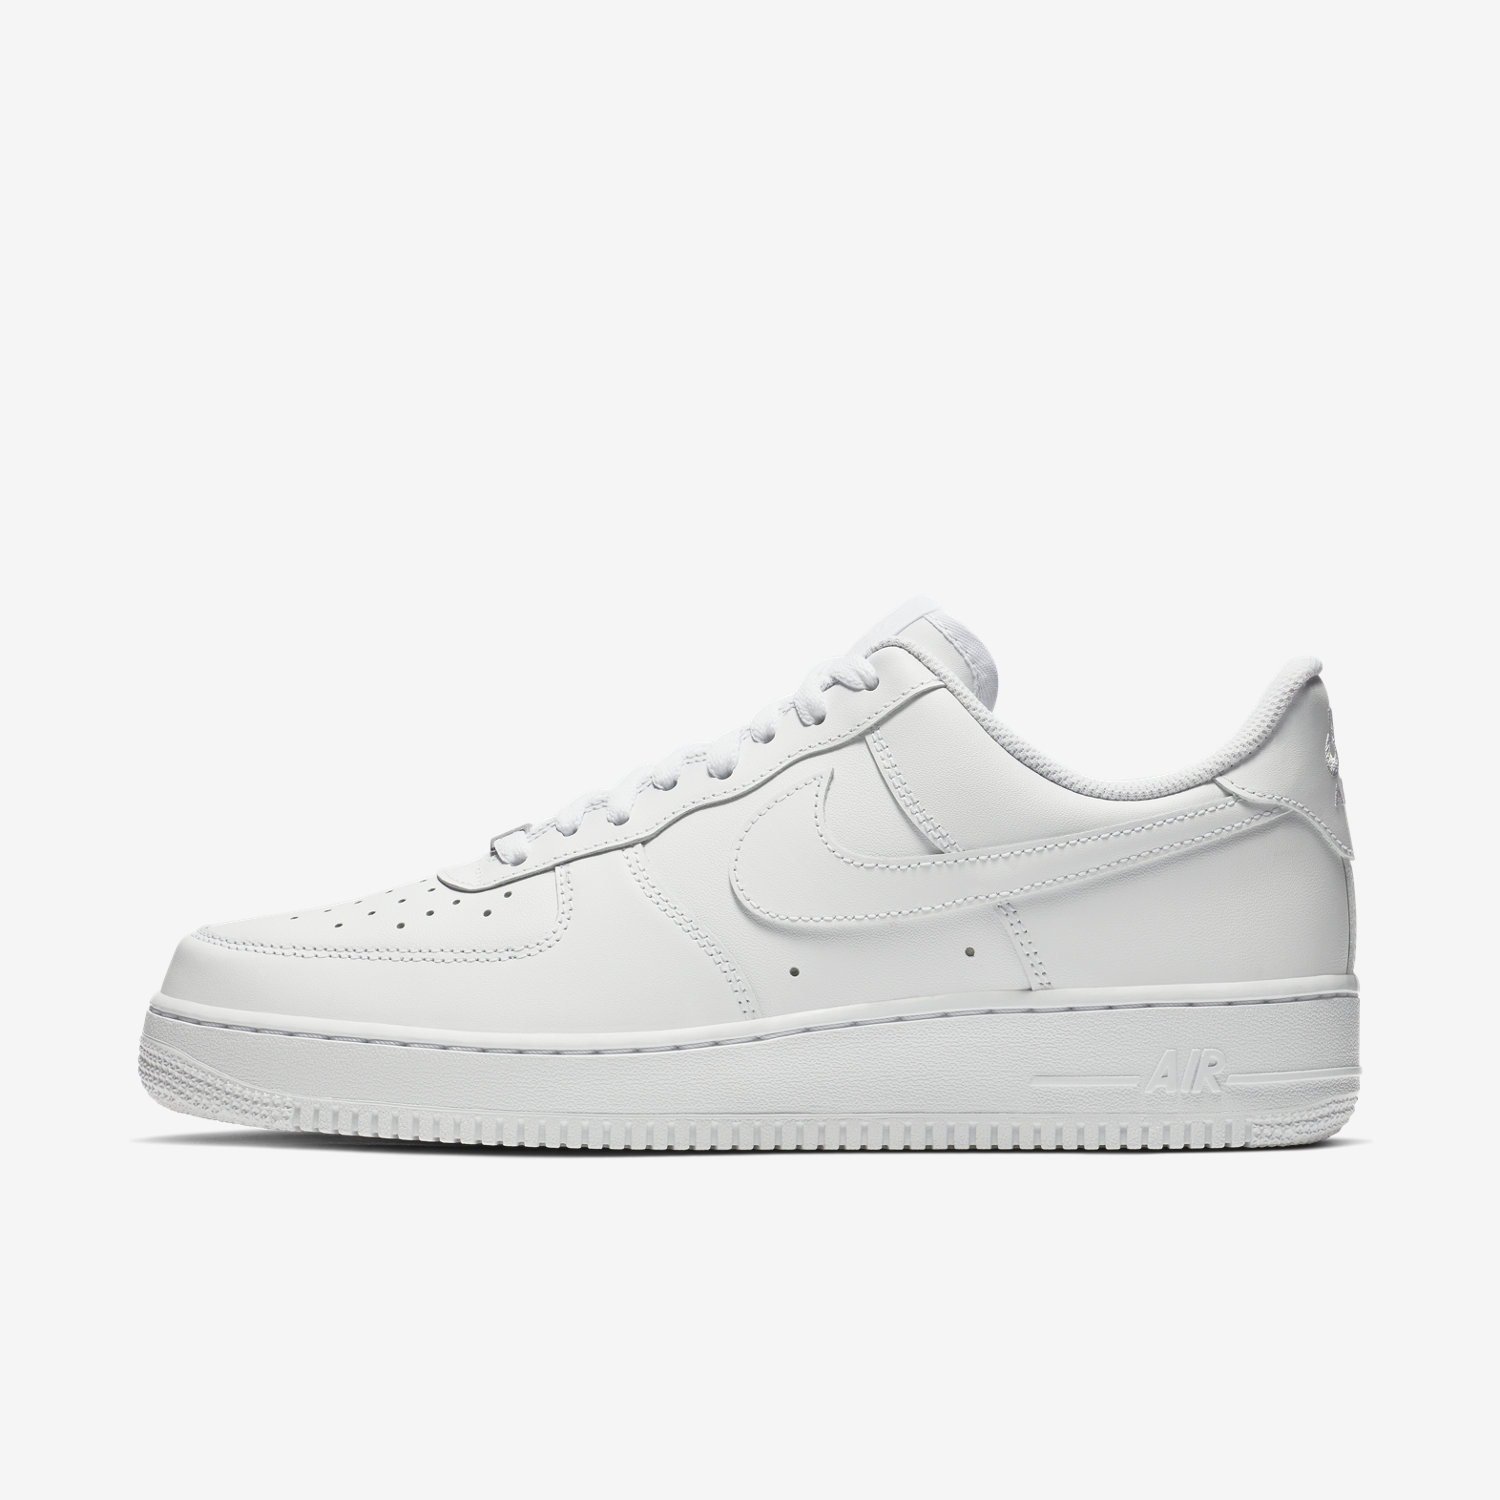 air force one nike price